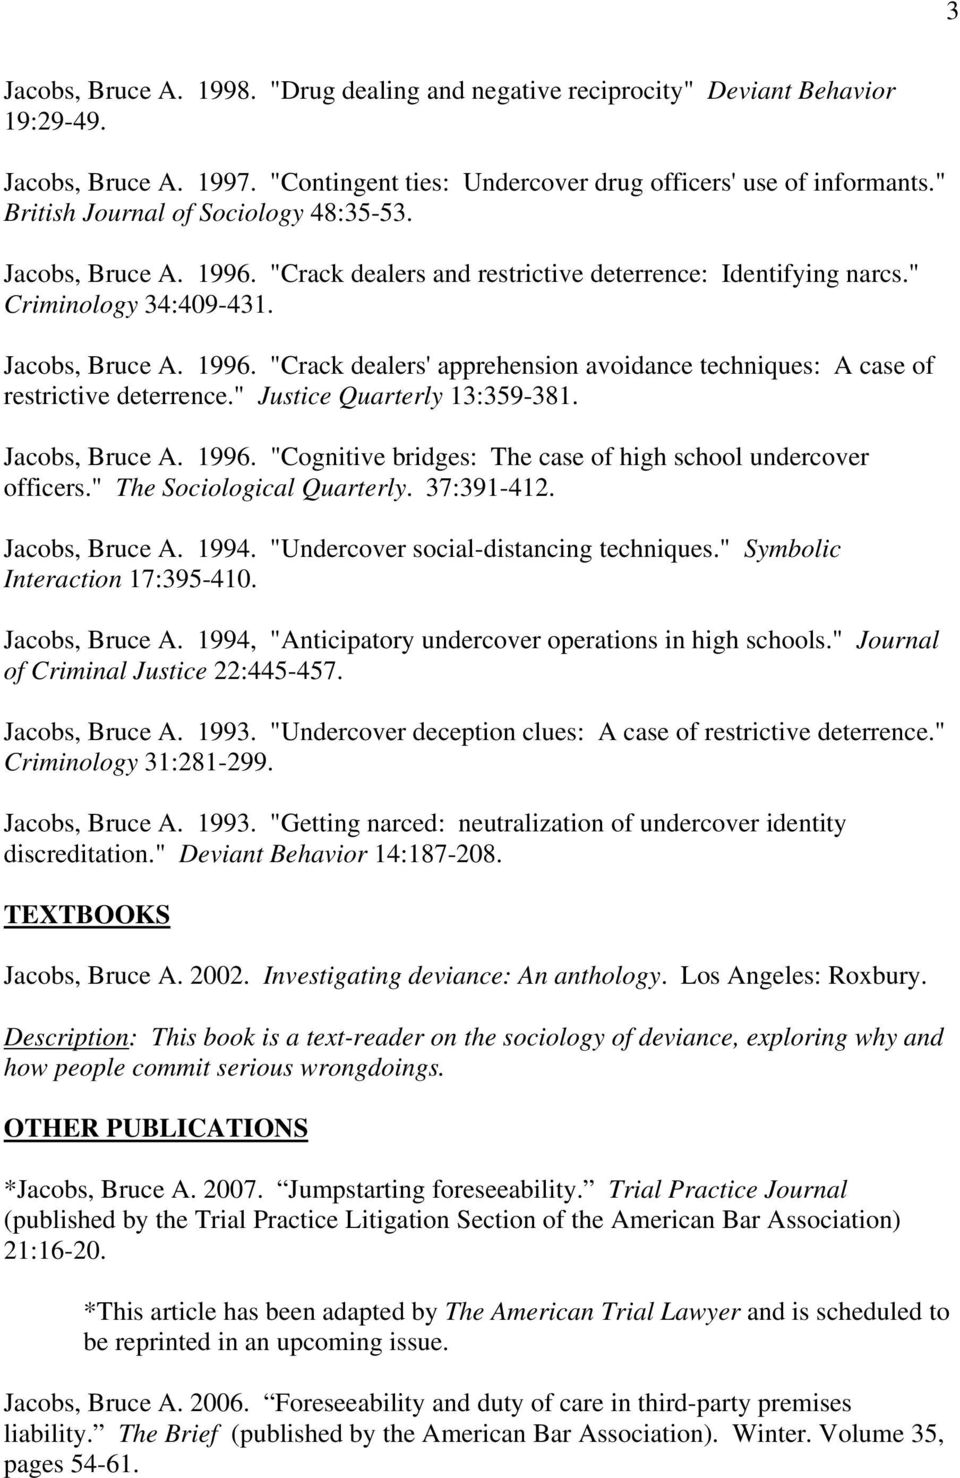 """ Justice Quarterly 13:359-381. Jacobs, Bruce A. 1996. ""Cognitive bridges: The case of high school undercover officers."" The Sociological Quarterly. 37:391-412. Jacobs, Bruce A. 1994."